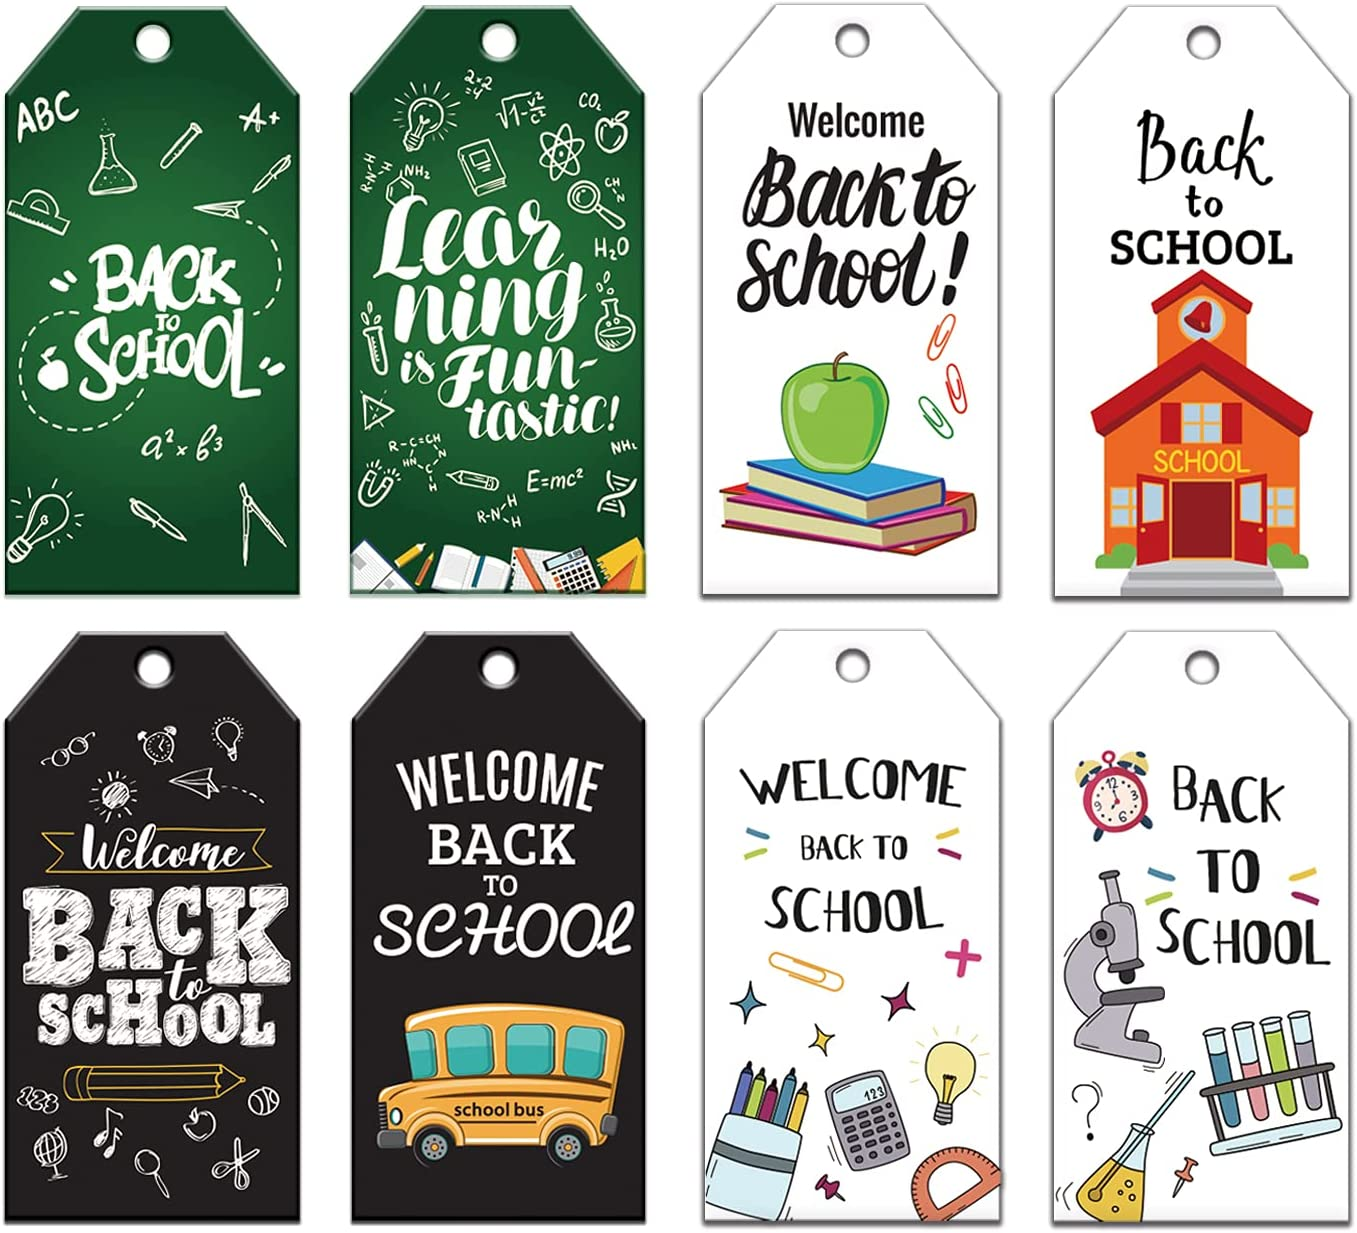 Doumeny 120Pcs Welcome Back Gift Paper Tags Back to School Gift Tags First Day of School Label Tags Teacher Classroom School Favor Tags with 65.6 Feet Twines for DIY Craft Party Birthday Gift Wrapping